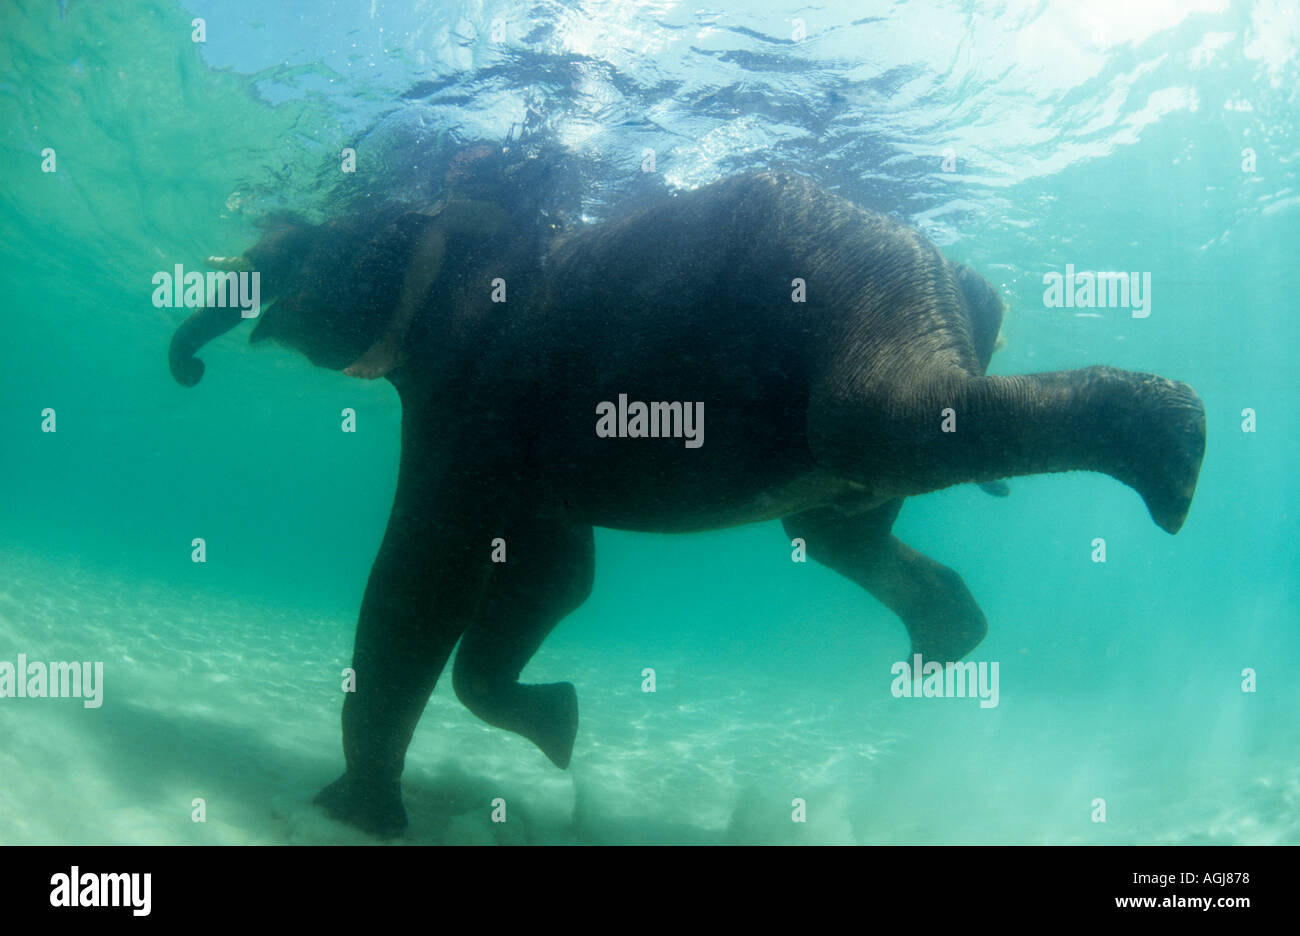 Elephant swimming underwater in THailand - Stock Image